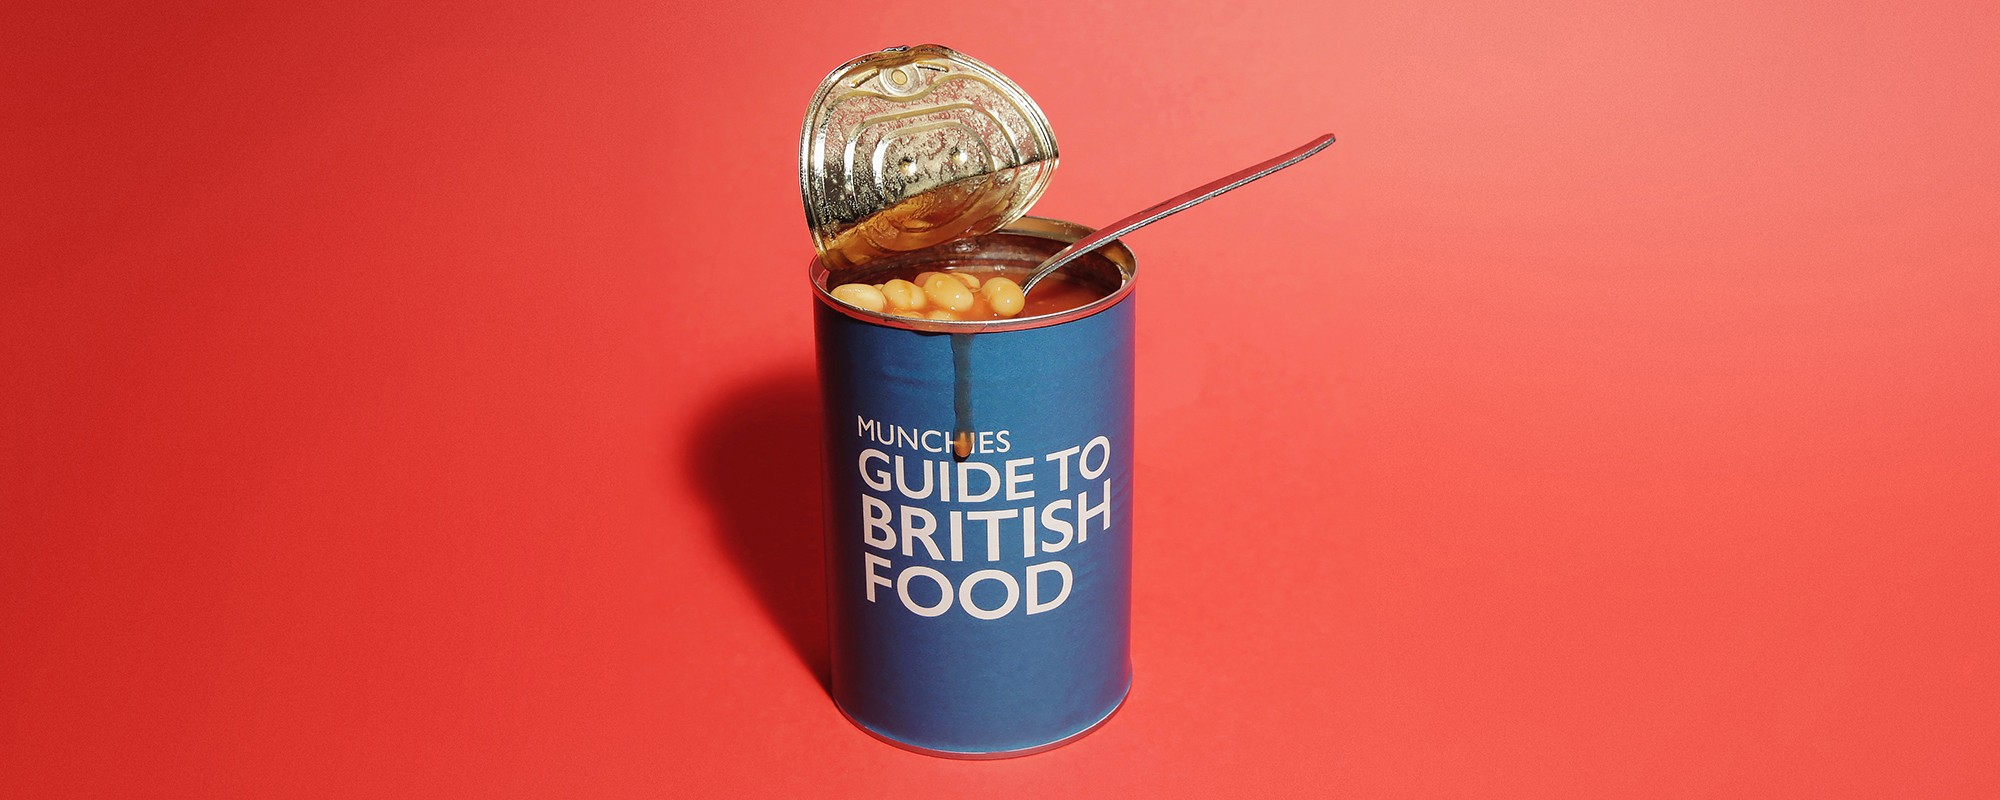 The MUNCHIES Guide to British Food